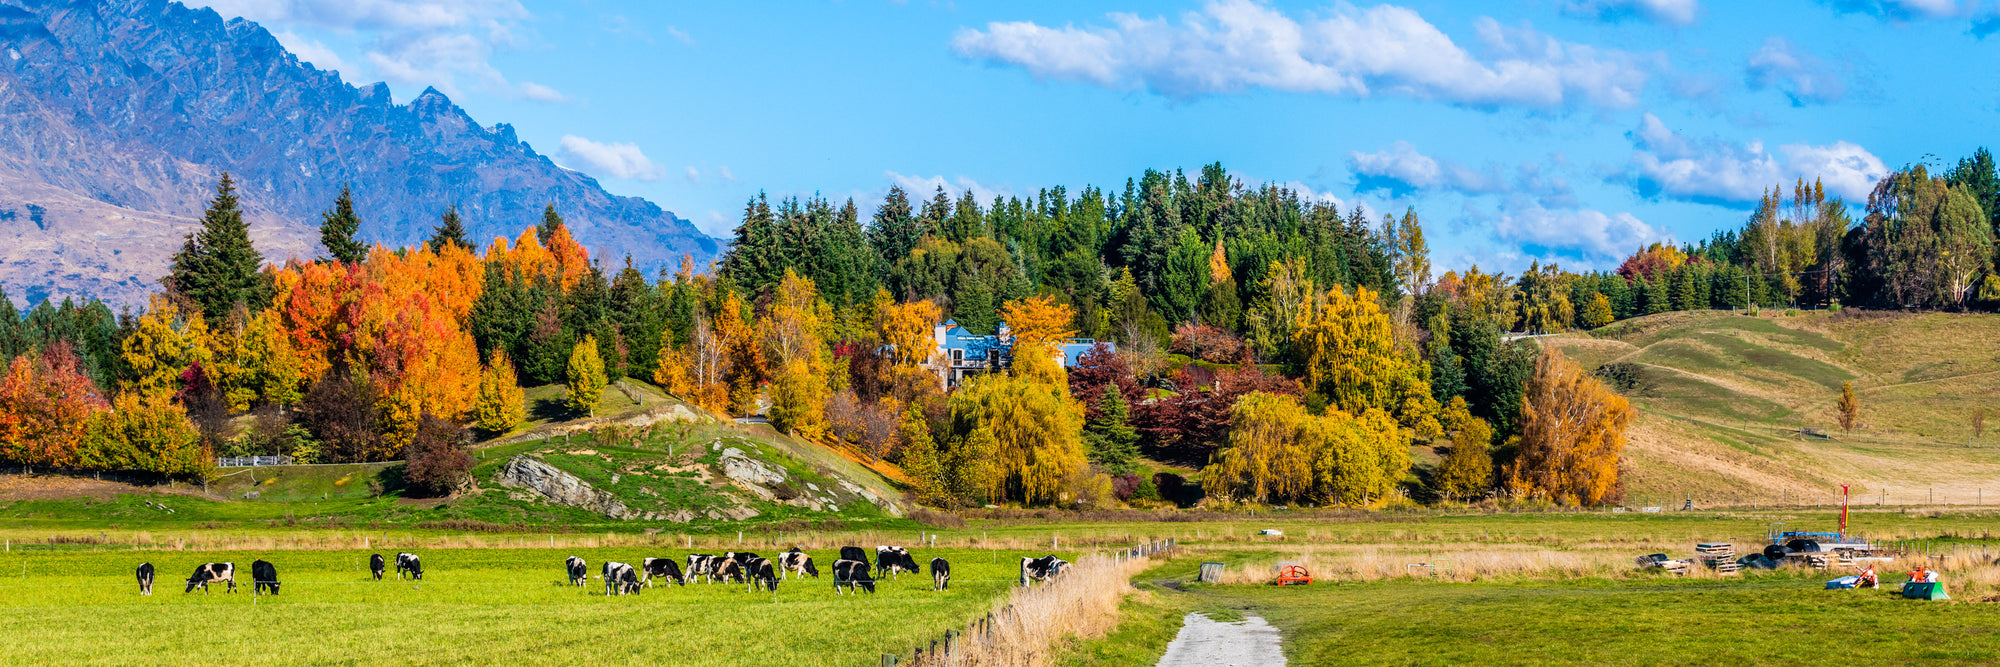 New Zealand Photography Tour – Day 1 – Queenstown to Lake Dunstan via Arrowtown